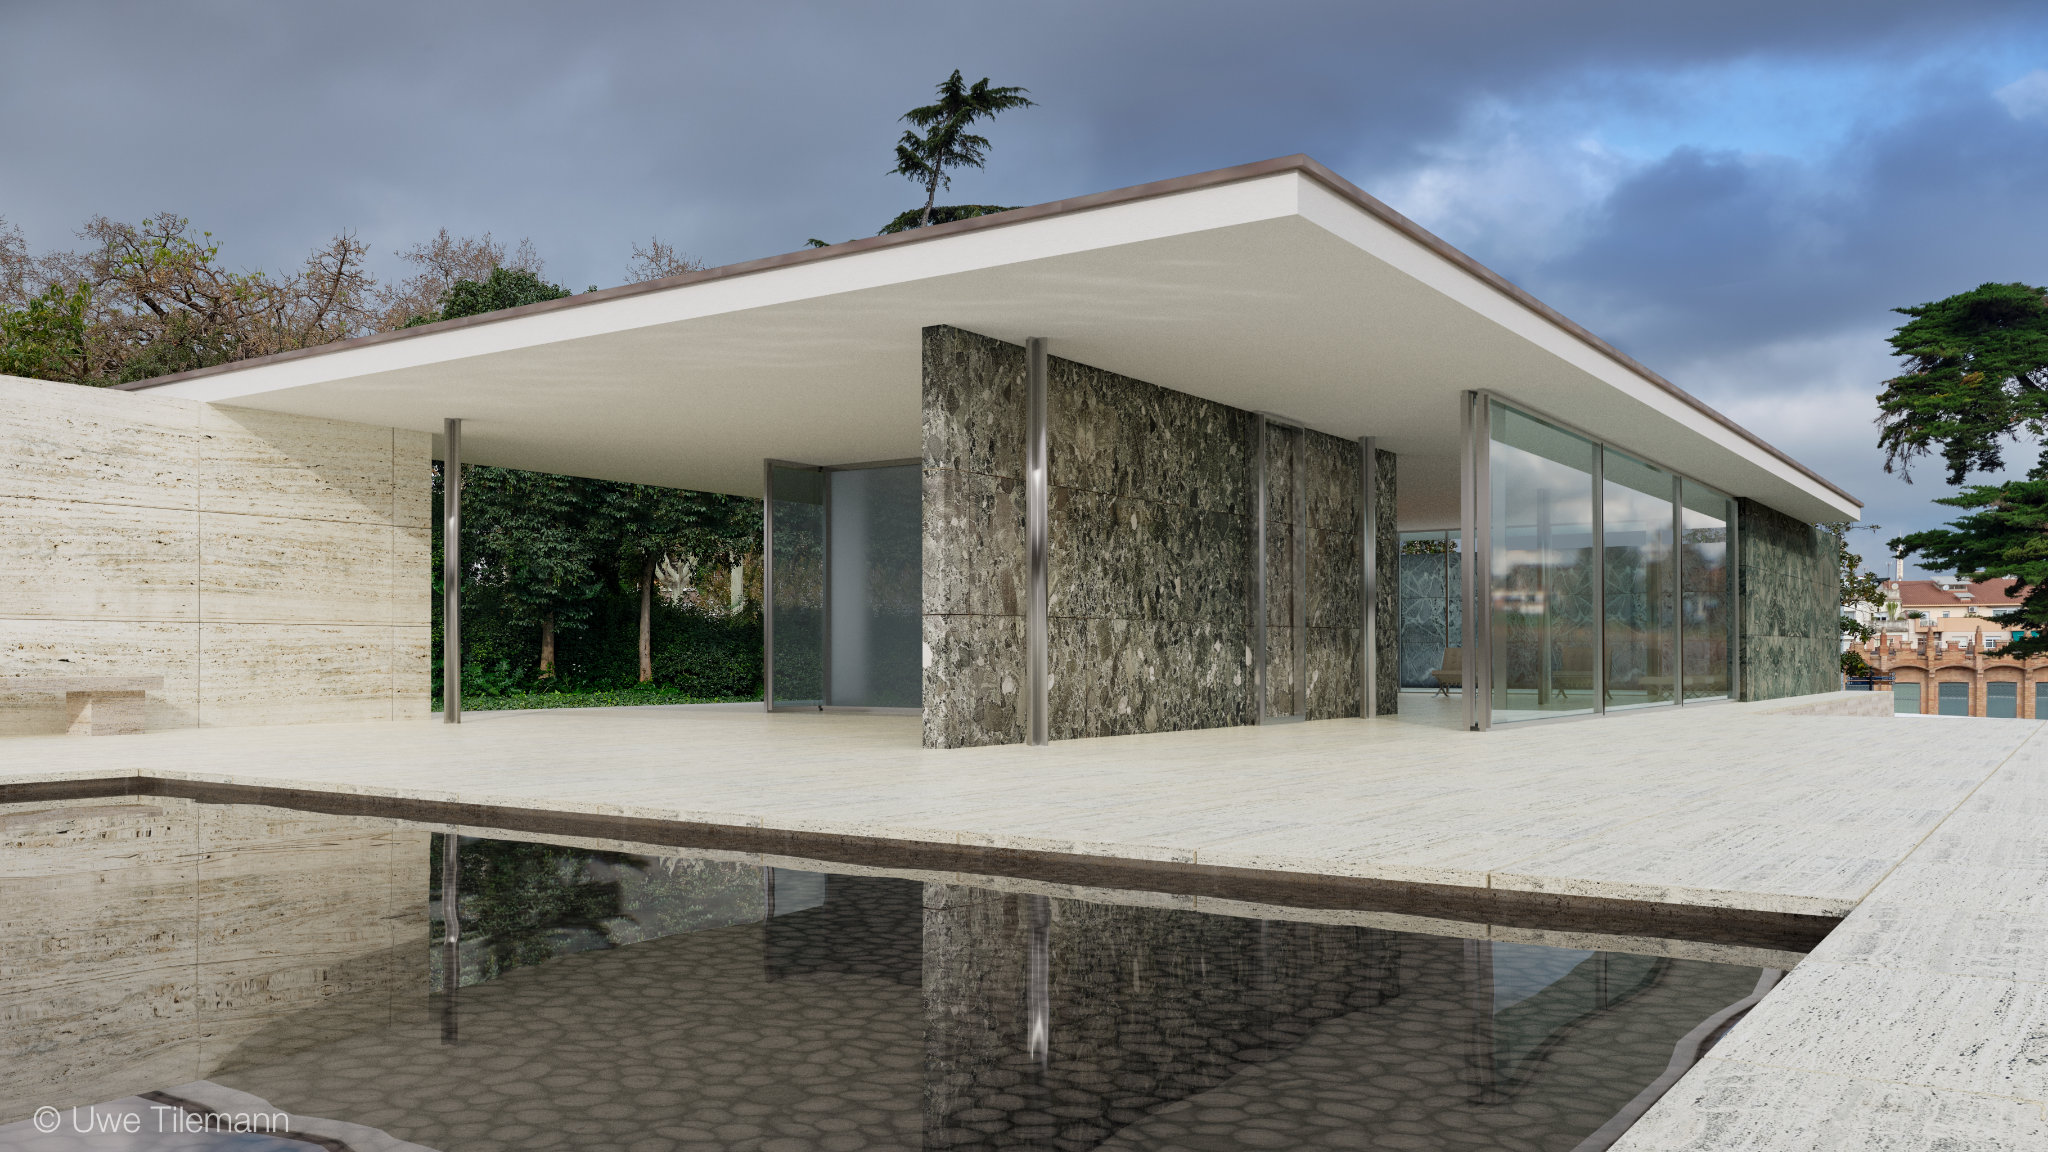 Rendering of the Barcelona Pavilion. Materials created with PBRtist.